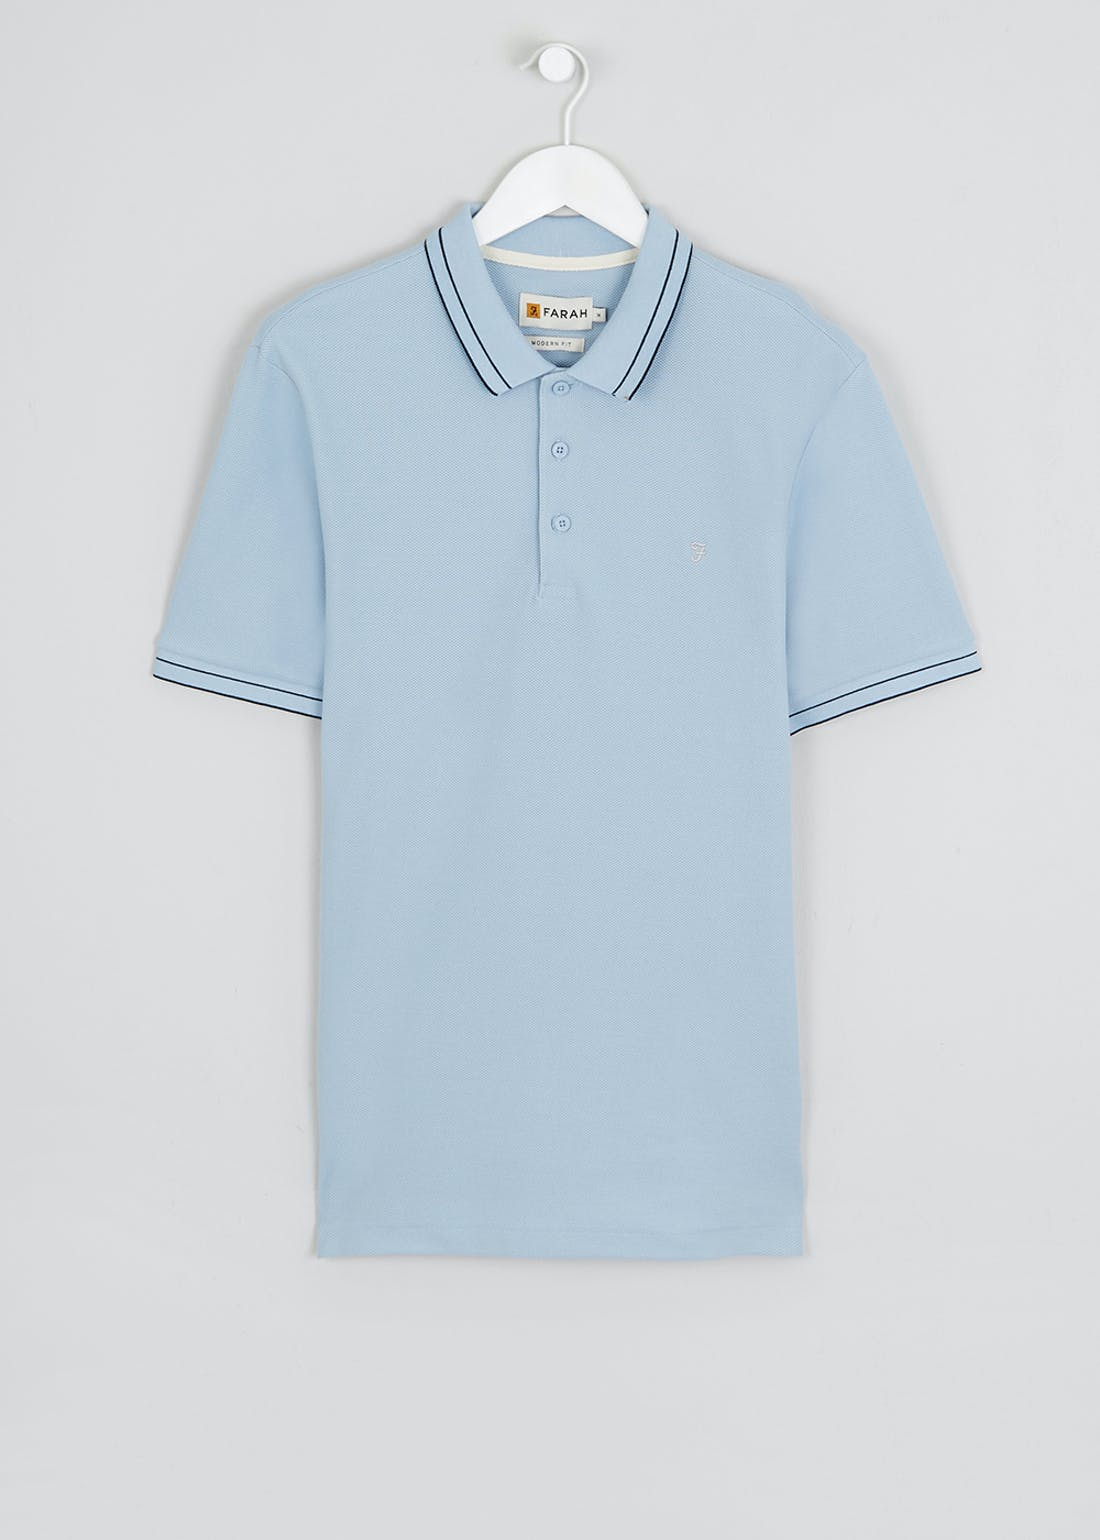 Farah Gyp Polo Shirt